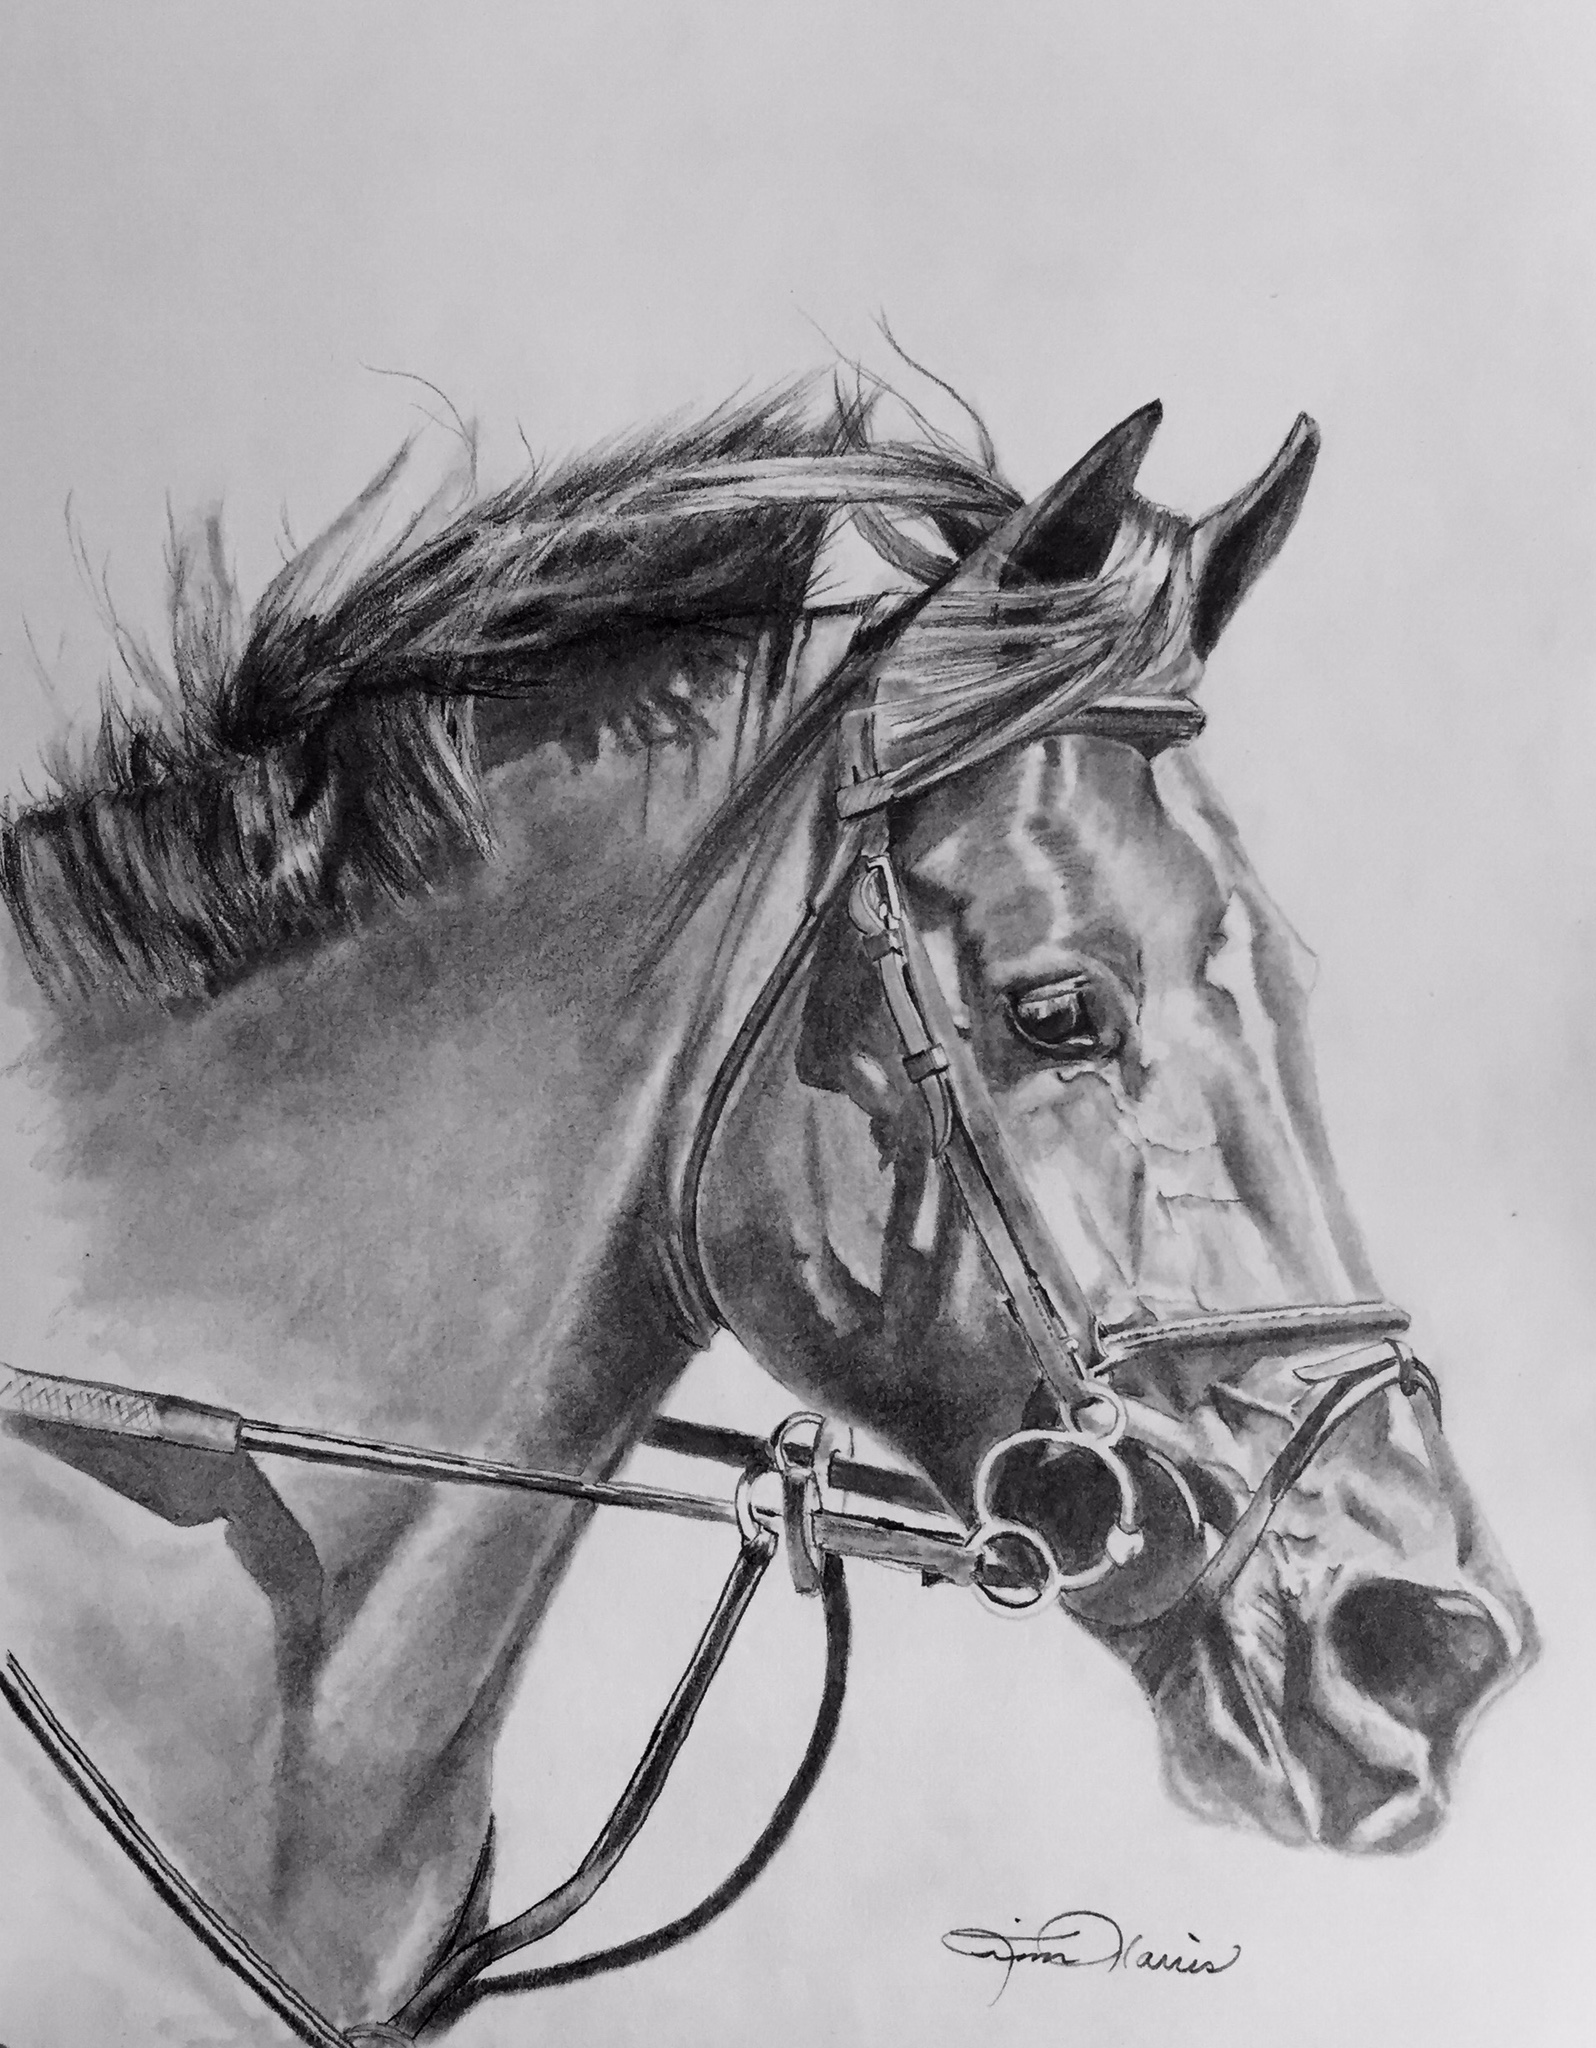 Custom graphite drawings of any discipline will be created for you and ready for framing